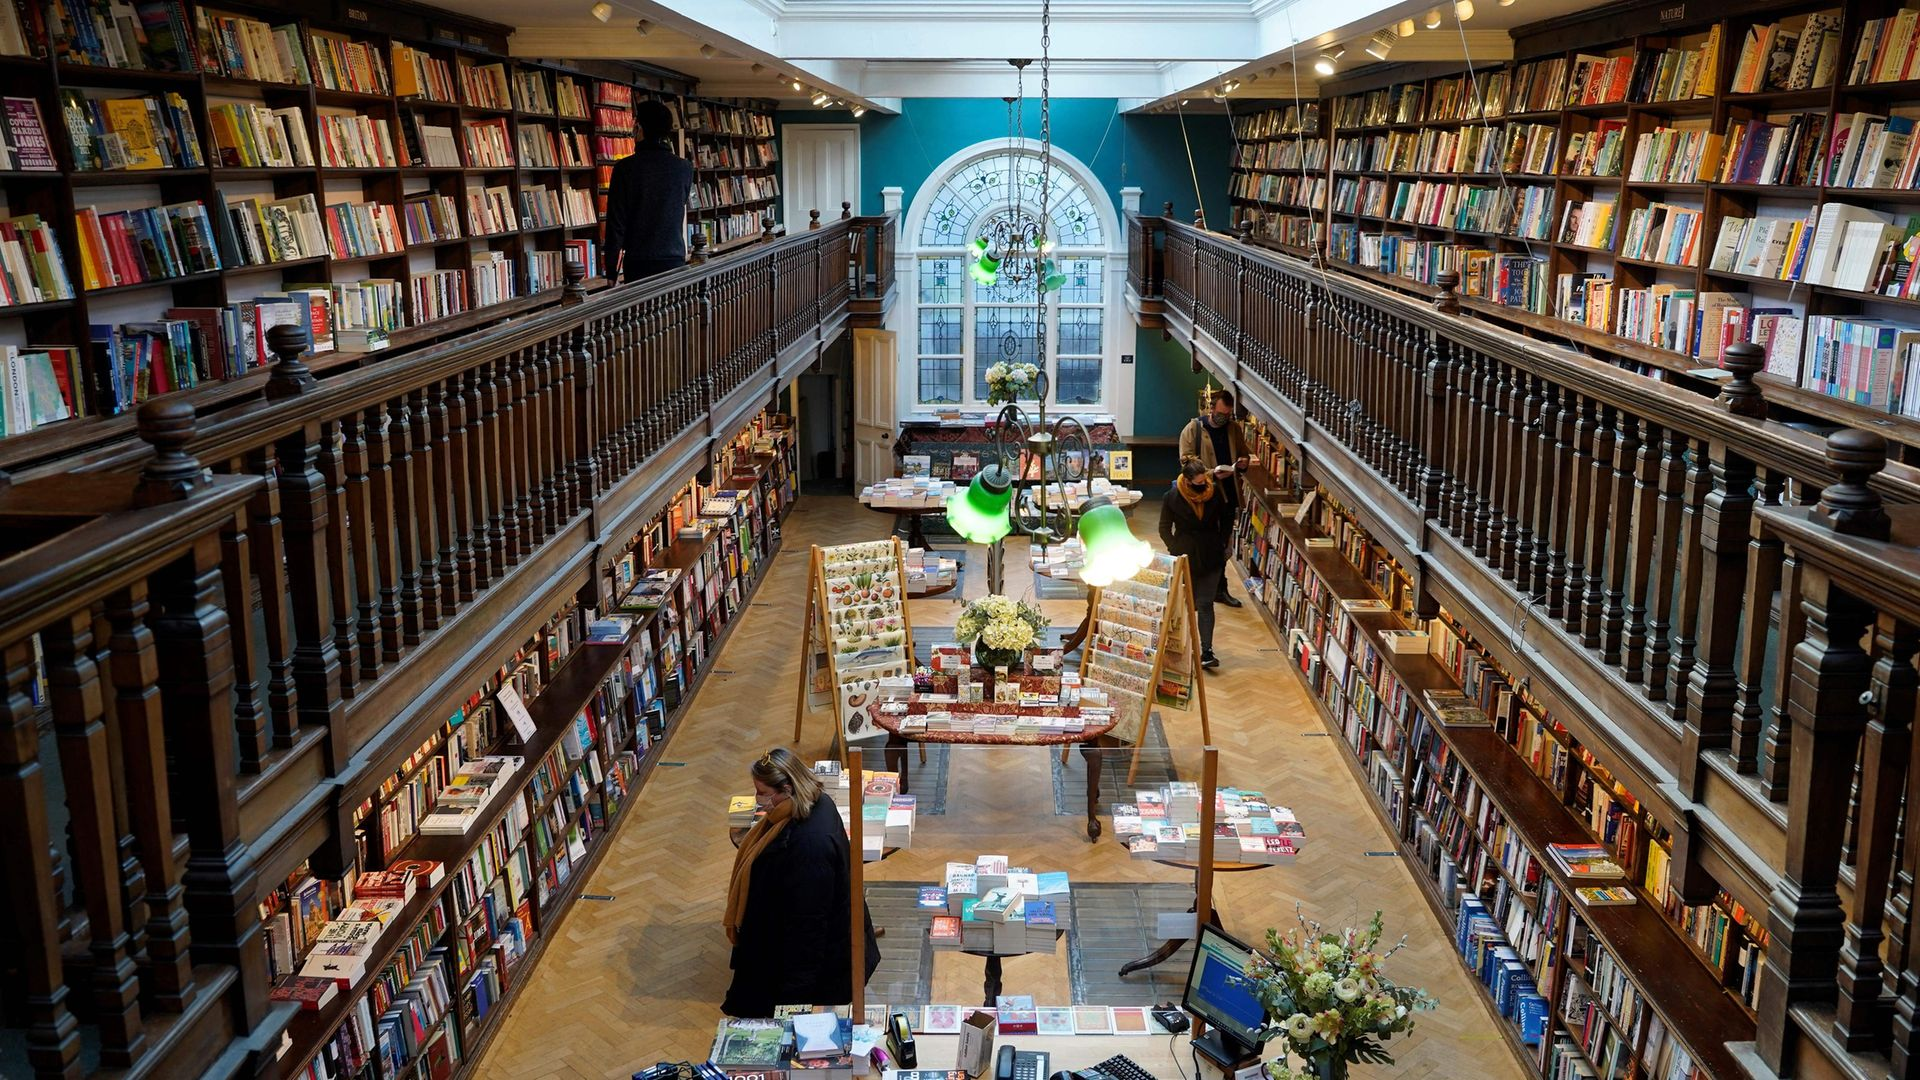 Customers wearing face masks browse for books inside the re-opened Daunt Books independent bookshop in London, after the easing of lockdown - Credit: AFP via Getty Images